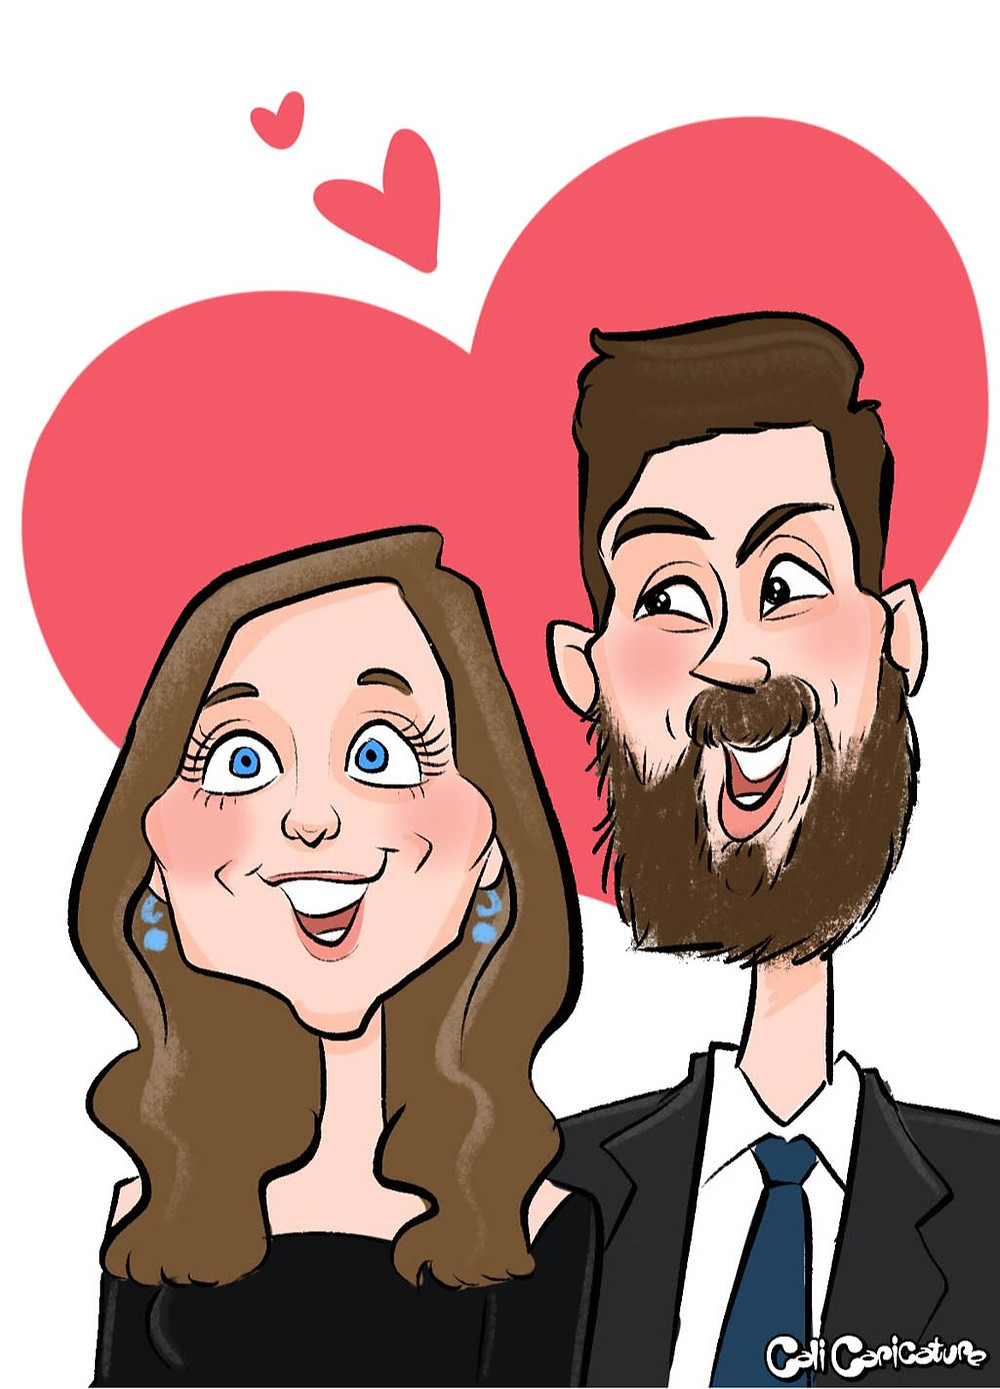 engagement proposal caricature romantic love hearts couple cute couples marriage caricatures art cartoon faces portrait engaged